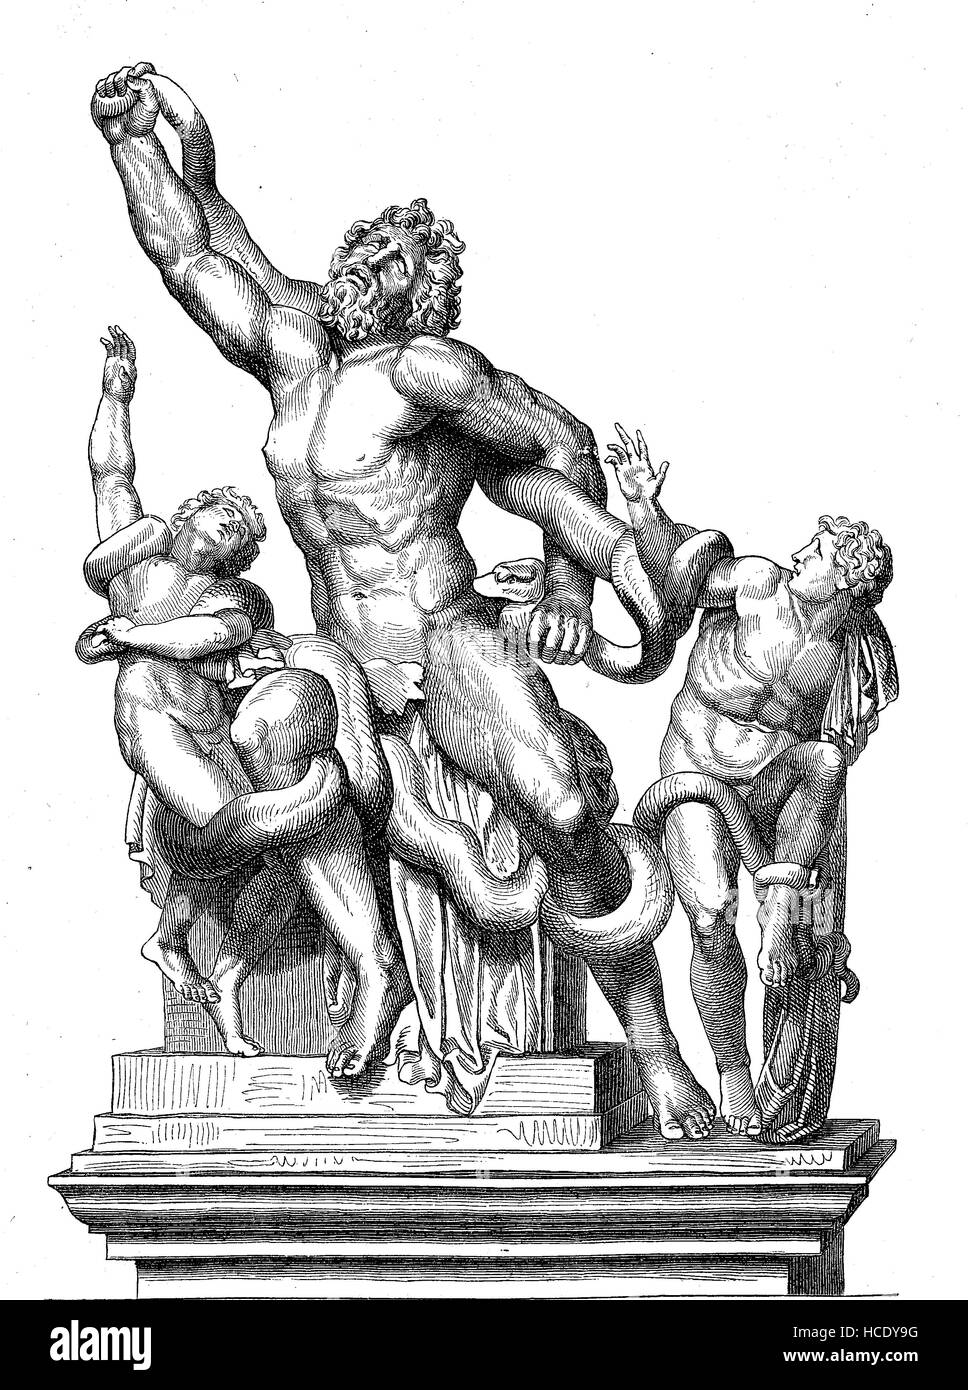 Laocoön, Laocooen, and His Sons, a person from the Greek and Roman mythology, the story of the ancient Rome, - Stock Image